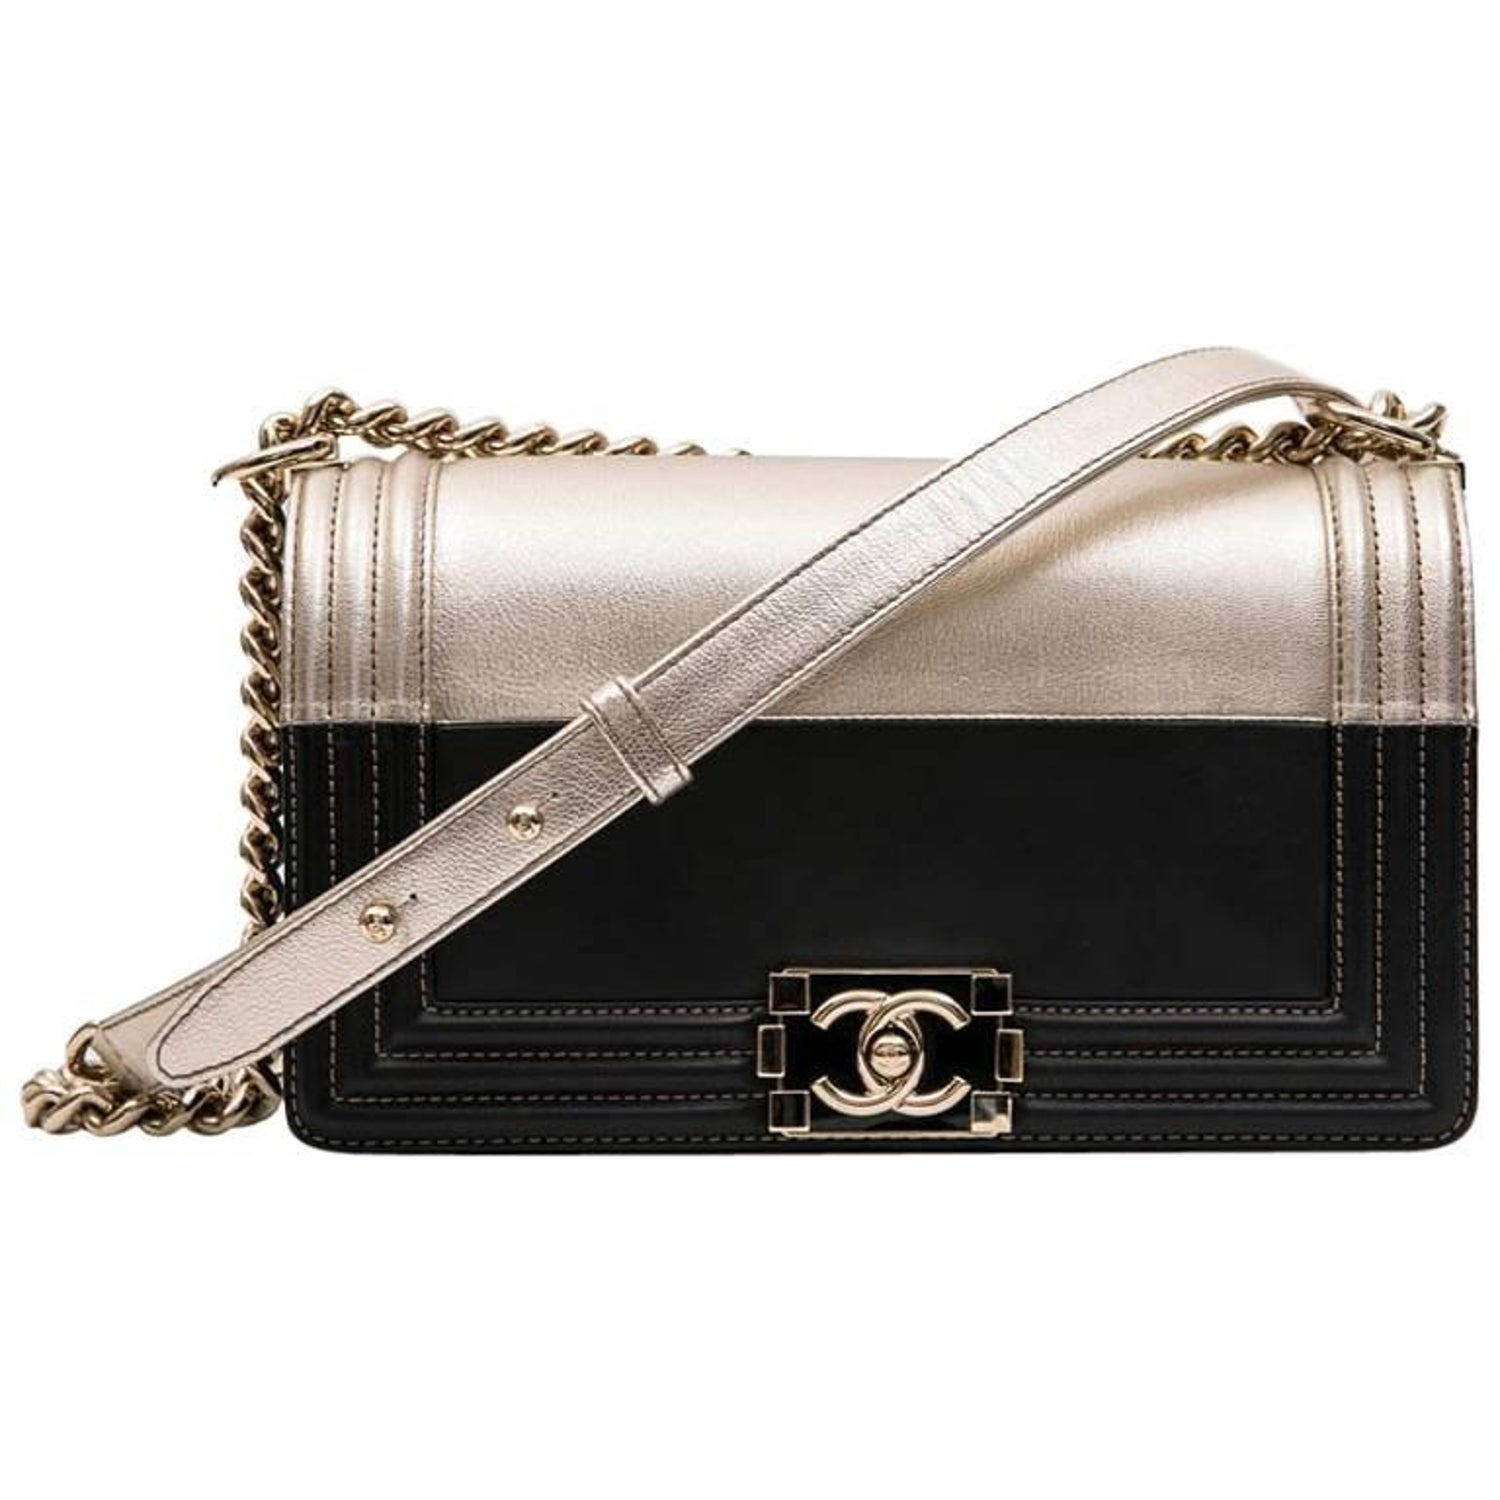 b204b966126465 Collector CHANEL Boy Bag in Black and Pale Gold Smooth Lamb Leather at  1stdibs